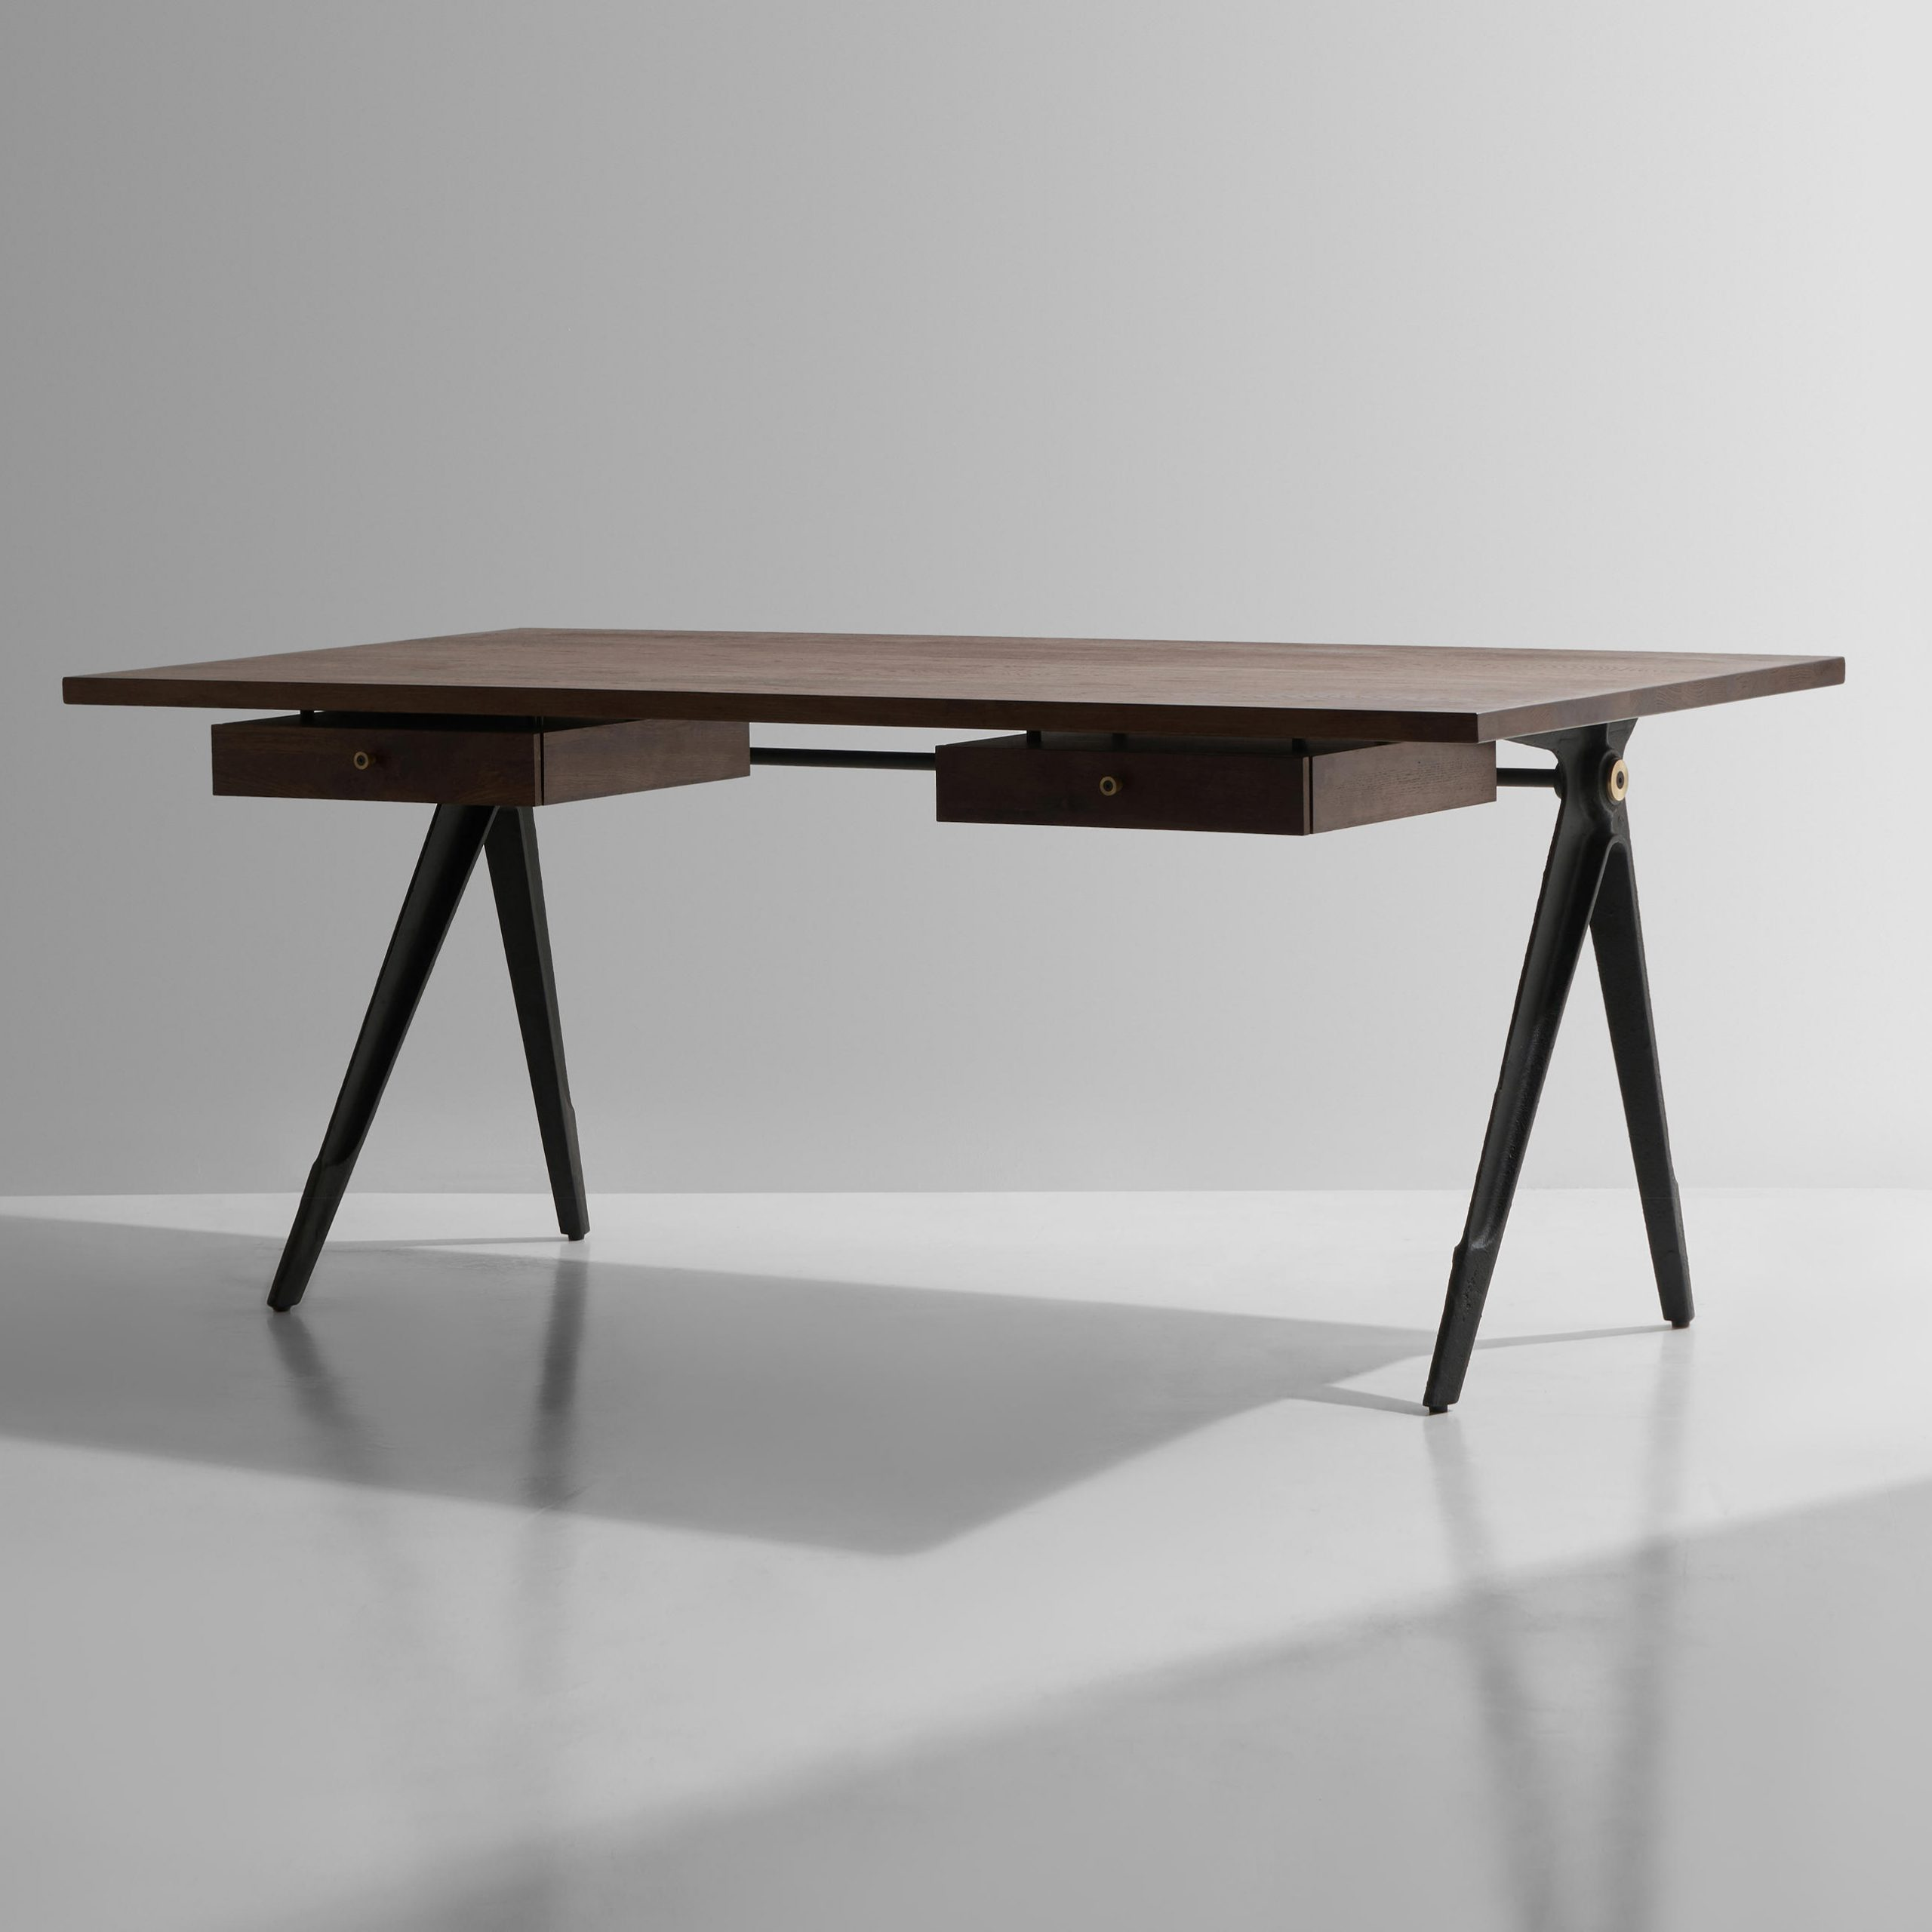 Architonic With Regard To Popular Dining Tables In Seared Oak With Brass Detail (View 13 of 25)